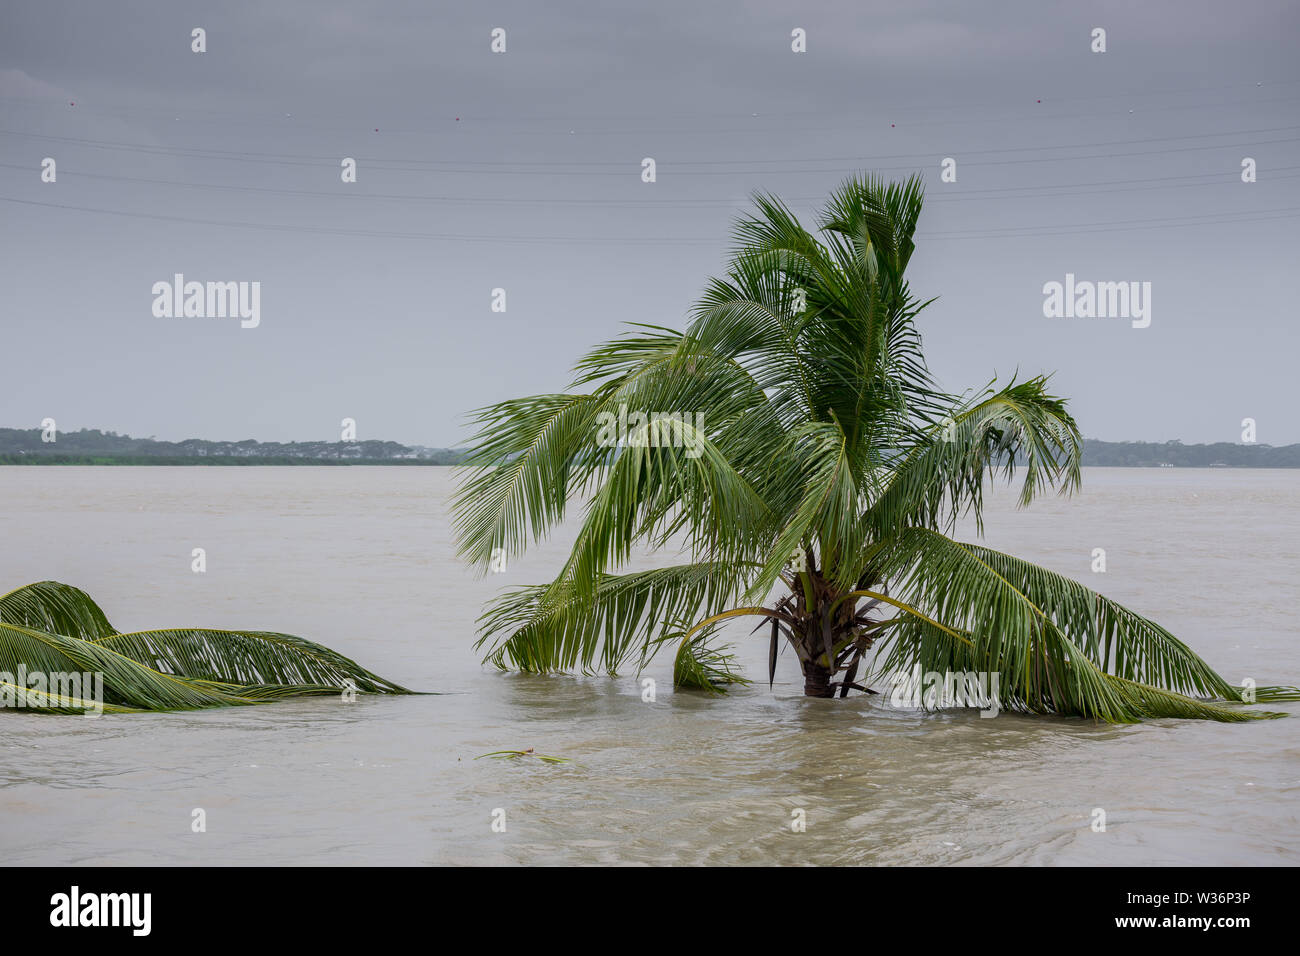 Bangladesh – June 27, 2015: A whole coconut tree is submerged in river, effect of massive river erosion at Rasulpur, Barisal District. - Stock Image